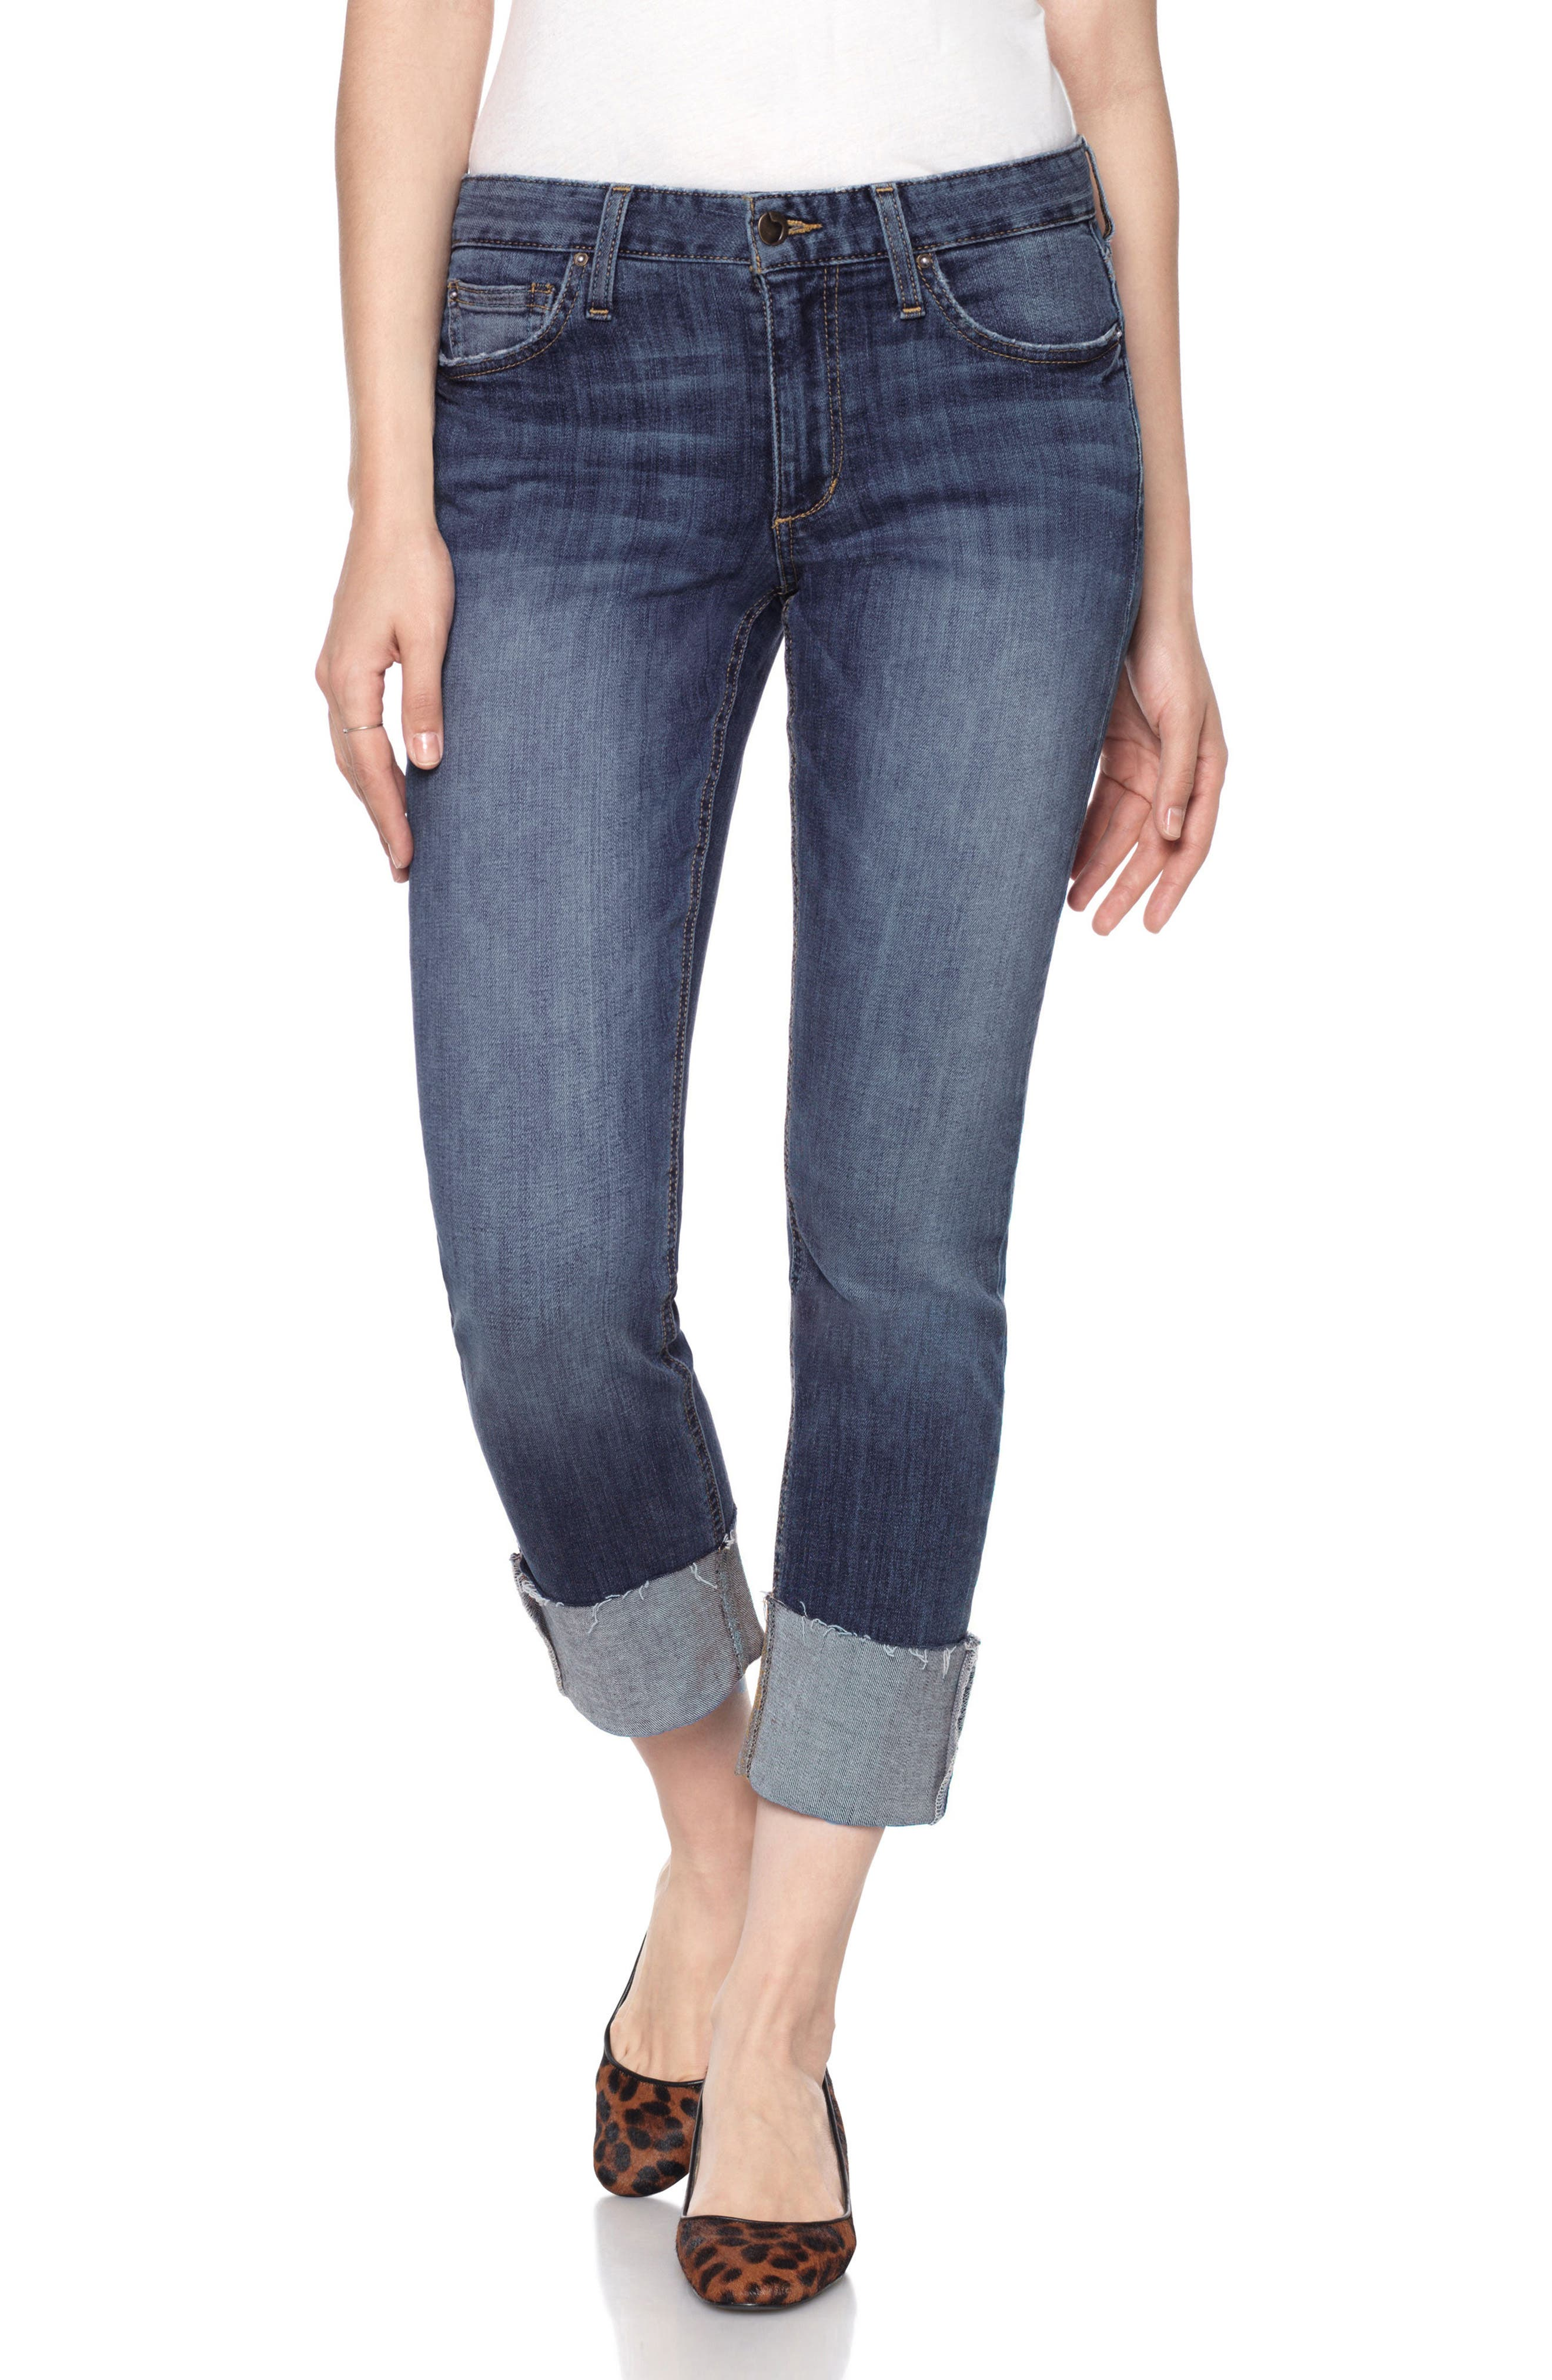 Joes Collectors Edition - Smith Distressed Crop Boyfriend Jeans,                             Main thumbnail 1, color,                             410